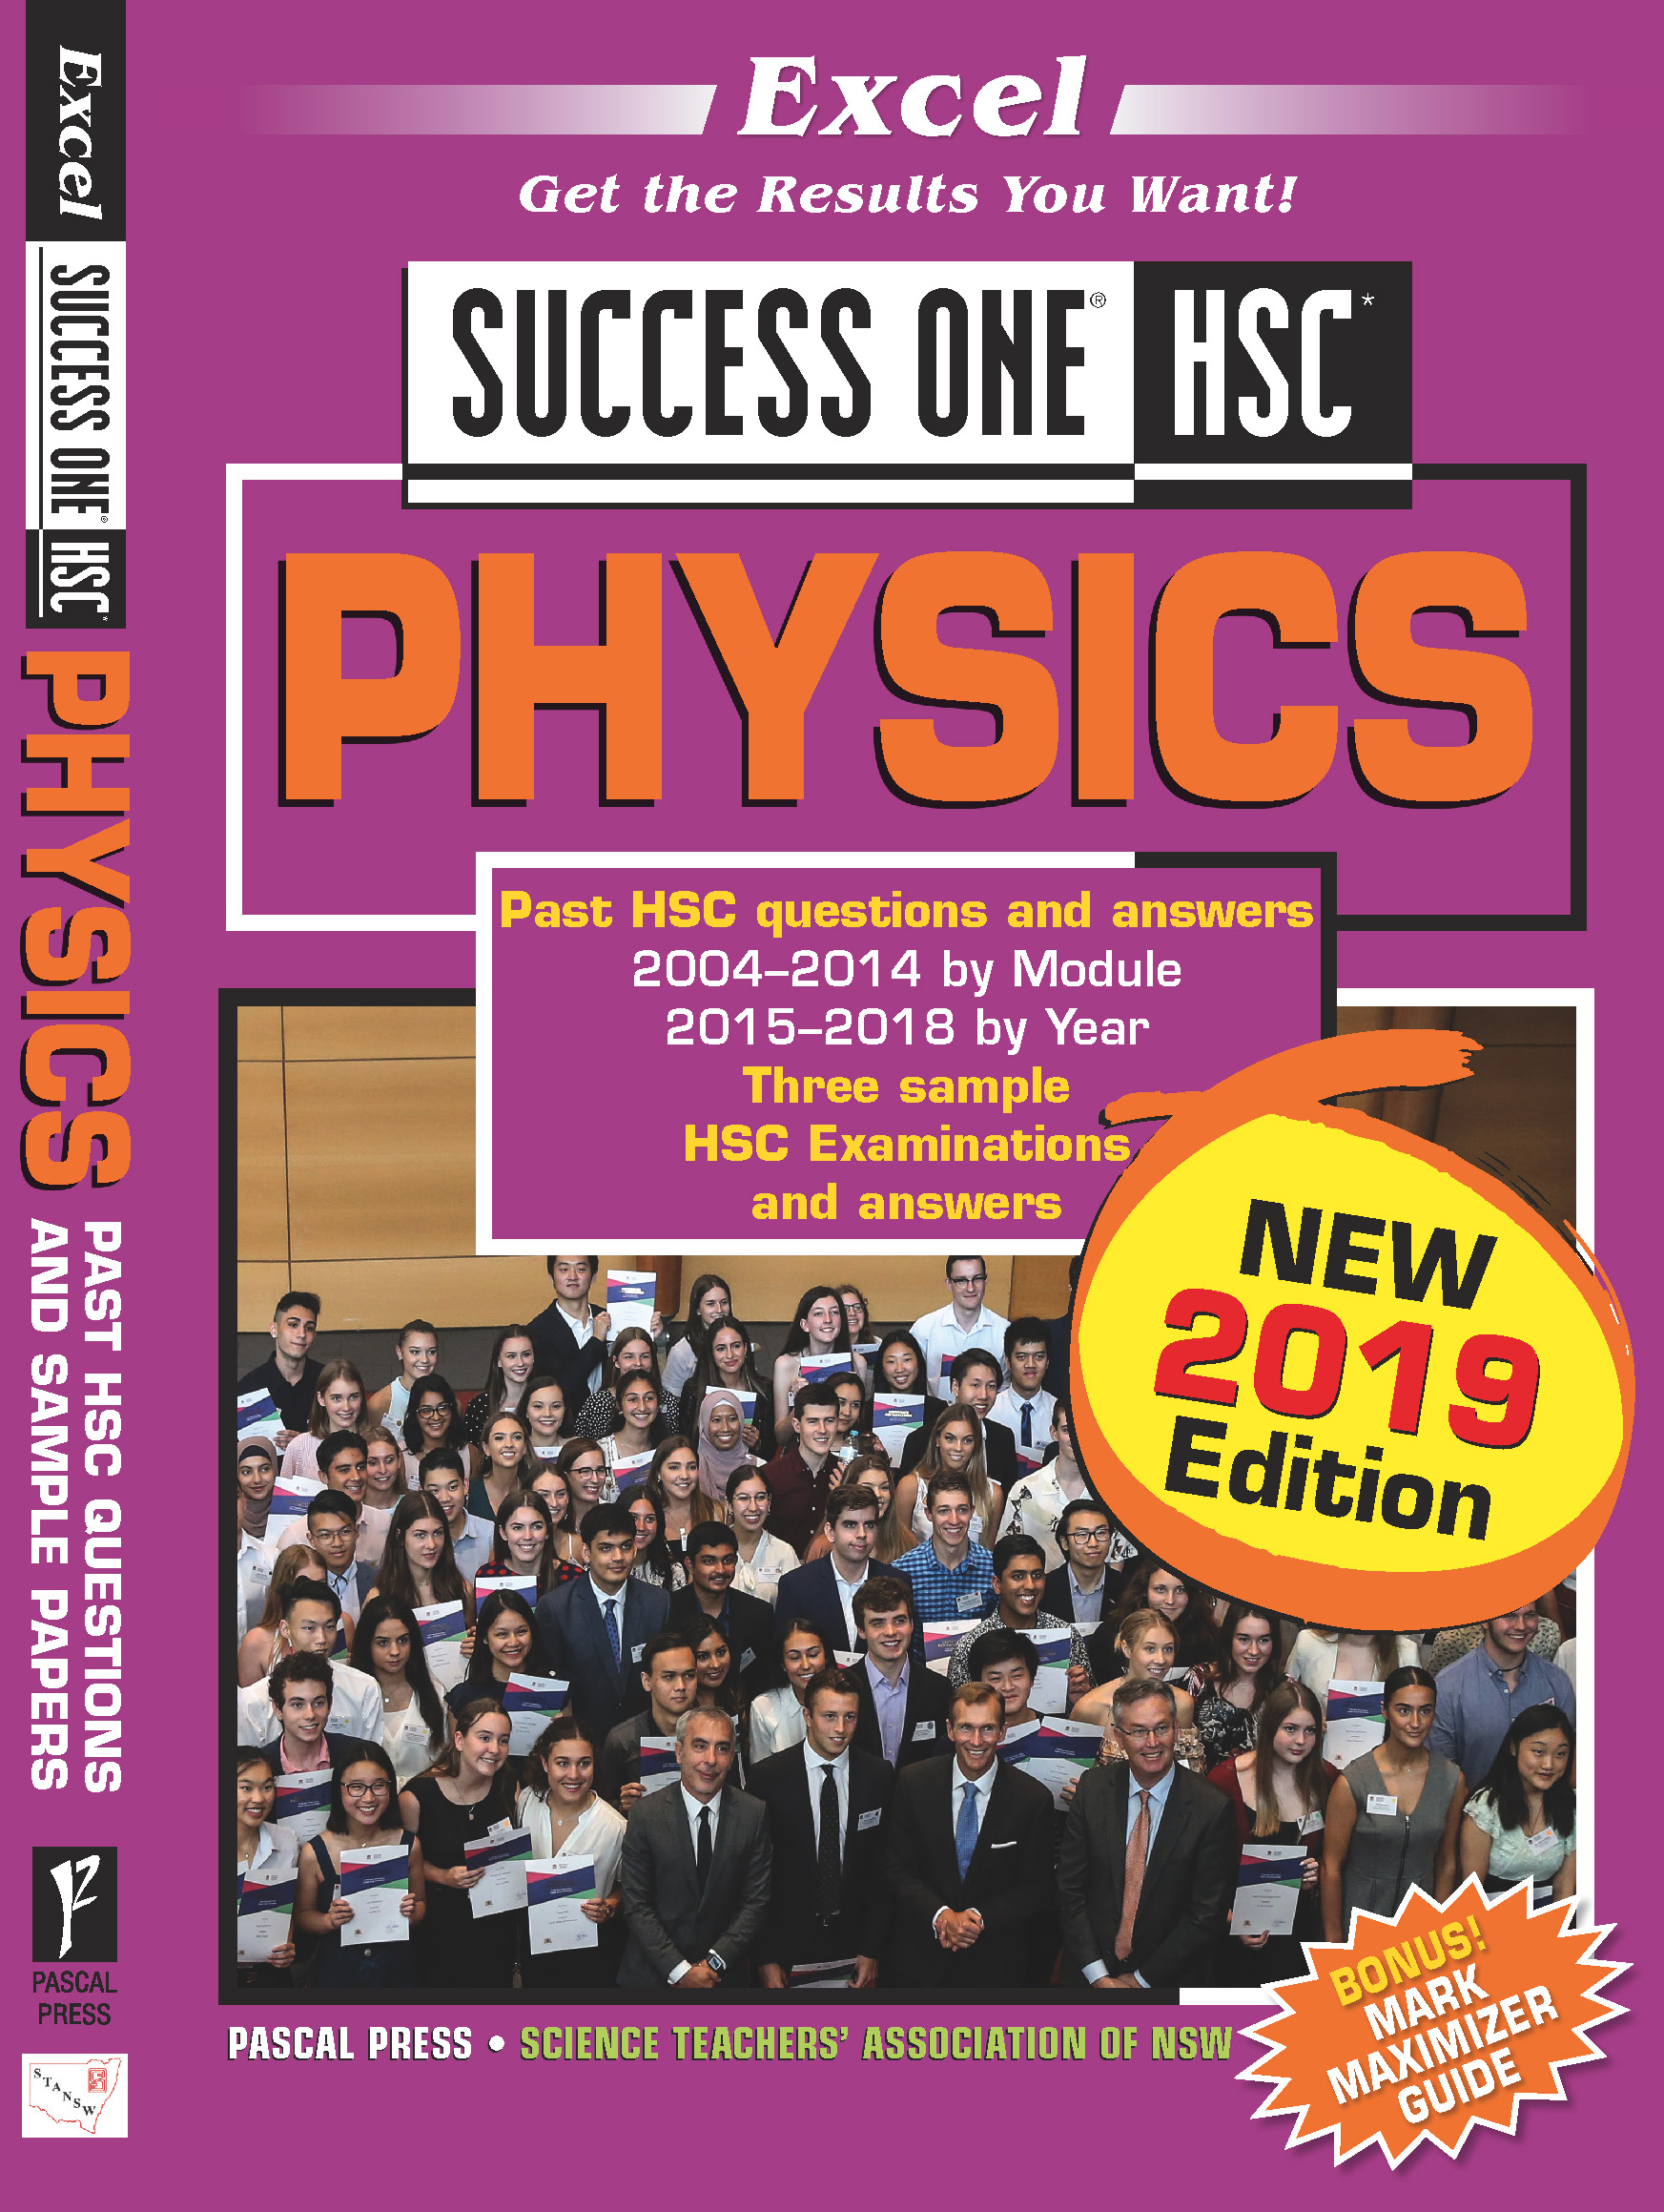 Excel Success One HSC Physics